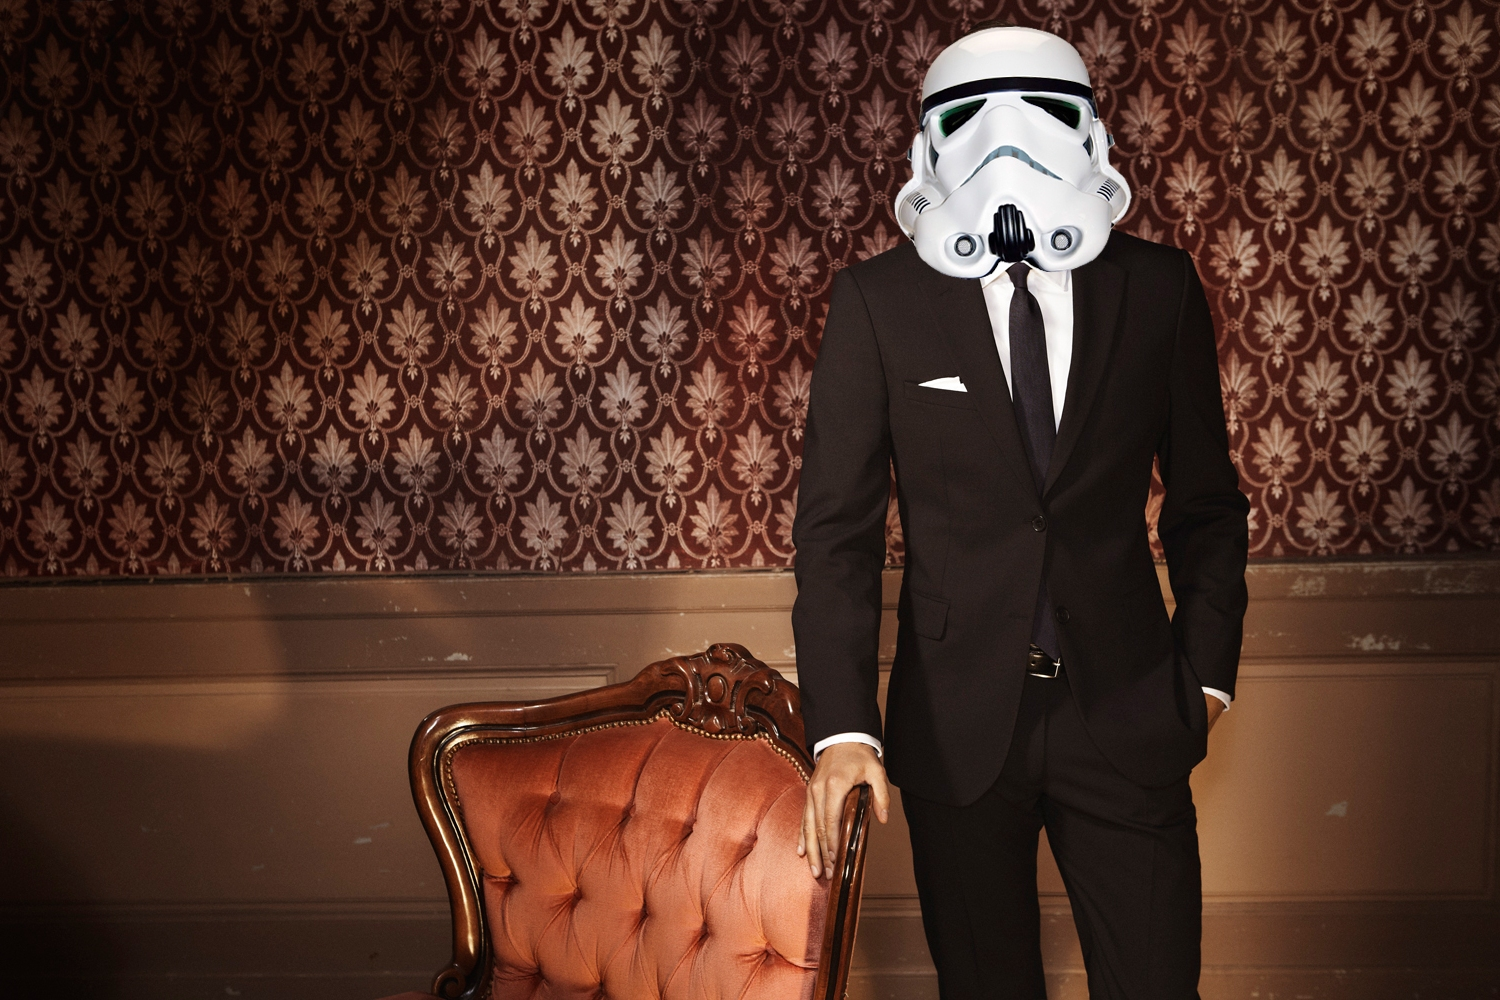 Storm Trooper Luxury Real Estate TalkToPaul